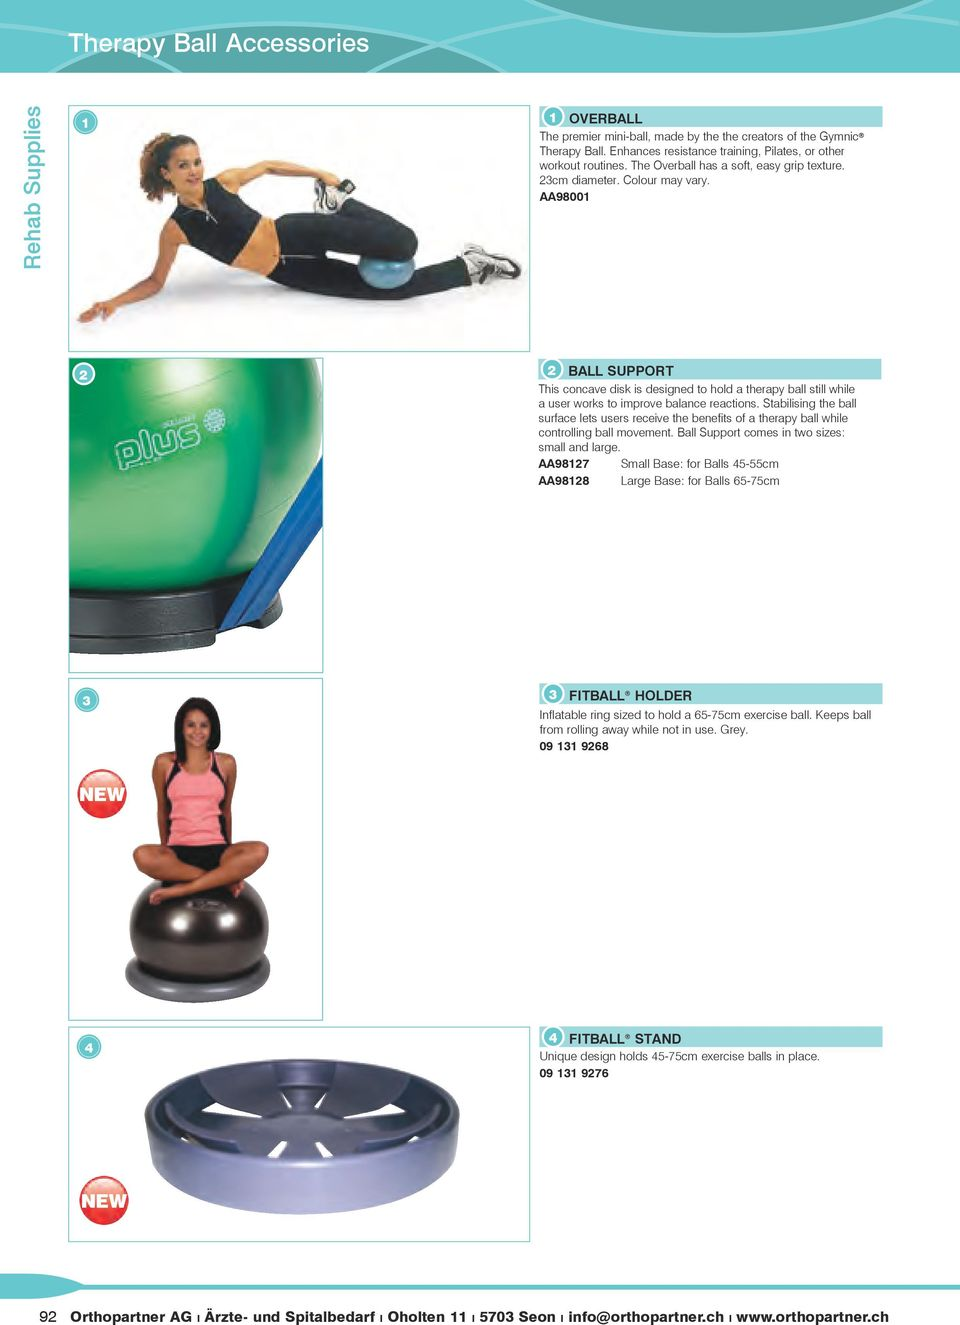 AA9800 BALL SUPPORT This concave disk is designed to hold a therapy ball still while a user works to improve balance reactions.